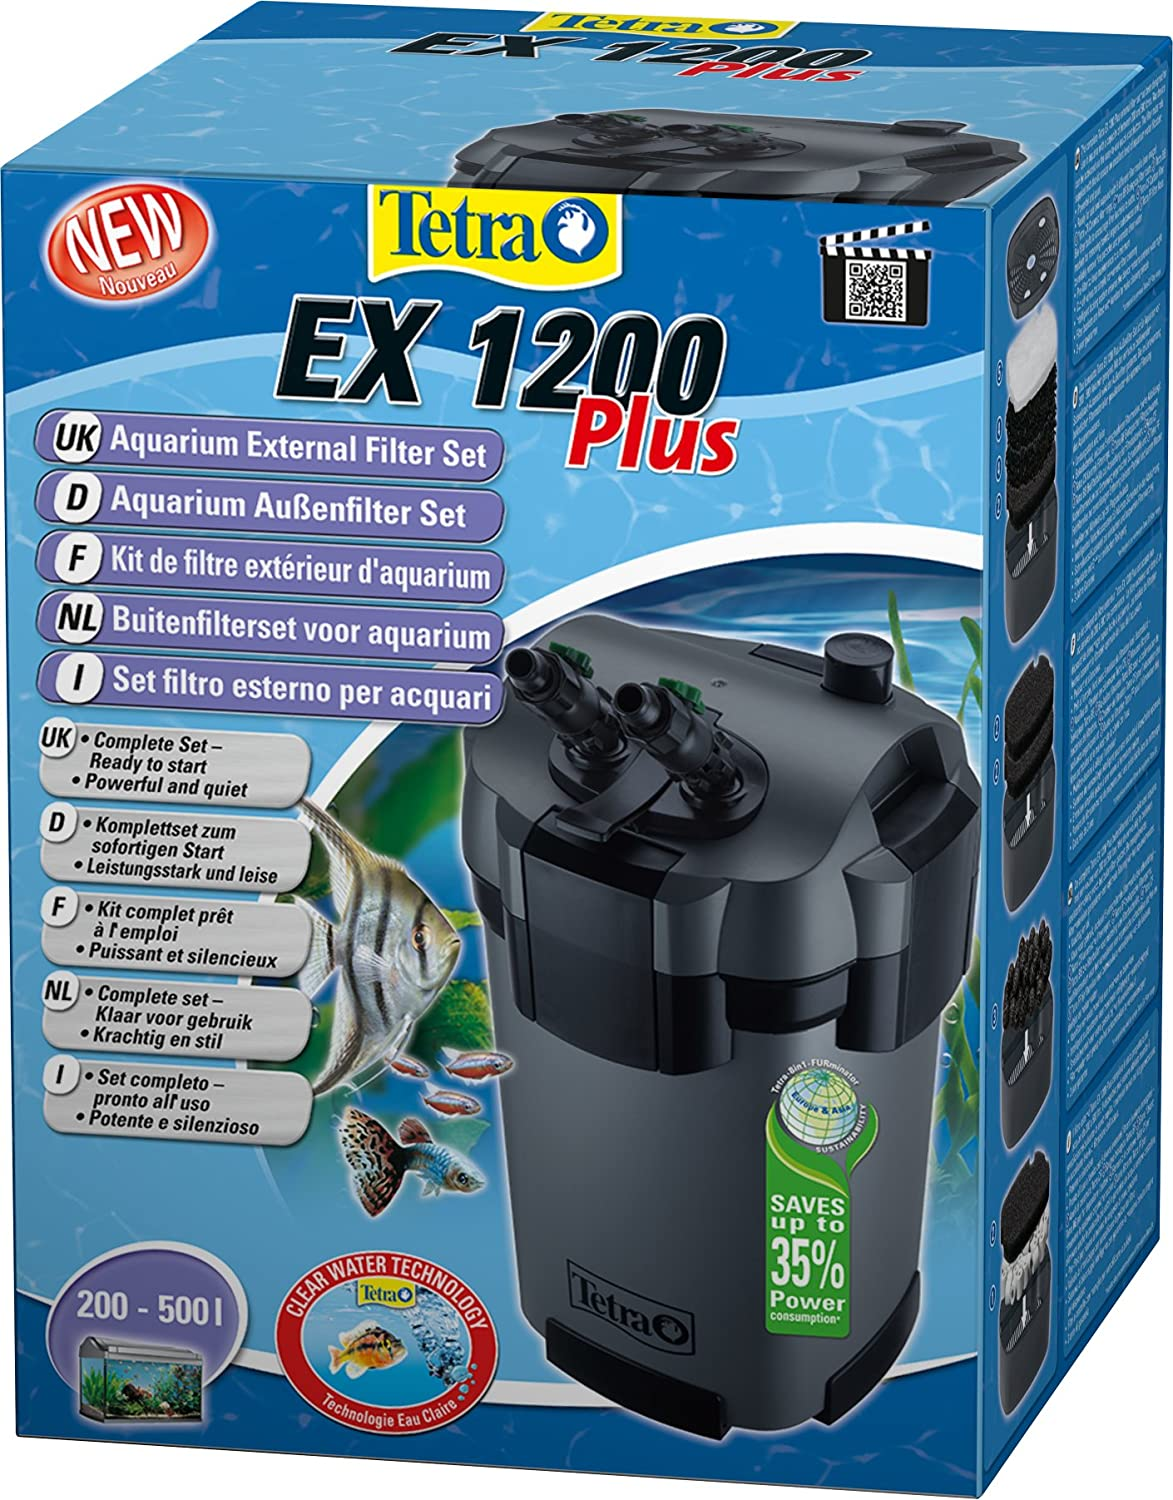 81 hGpfR69L._SL1500_ tetra tec ex 700 external filter amazon co uk pet supplies  at mr168.co